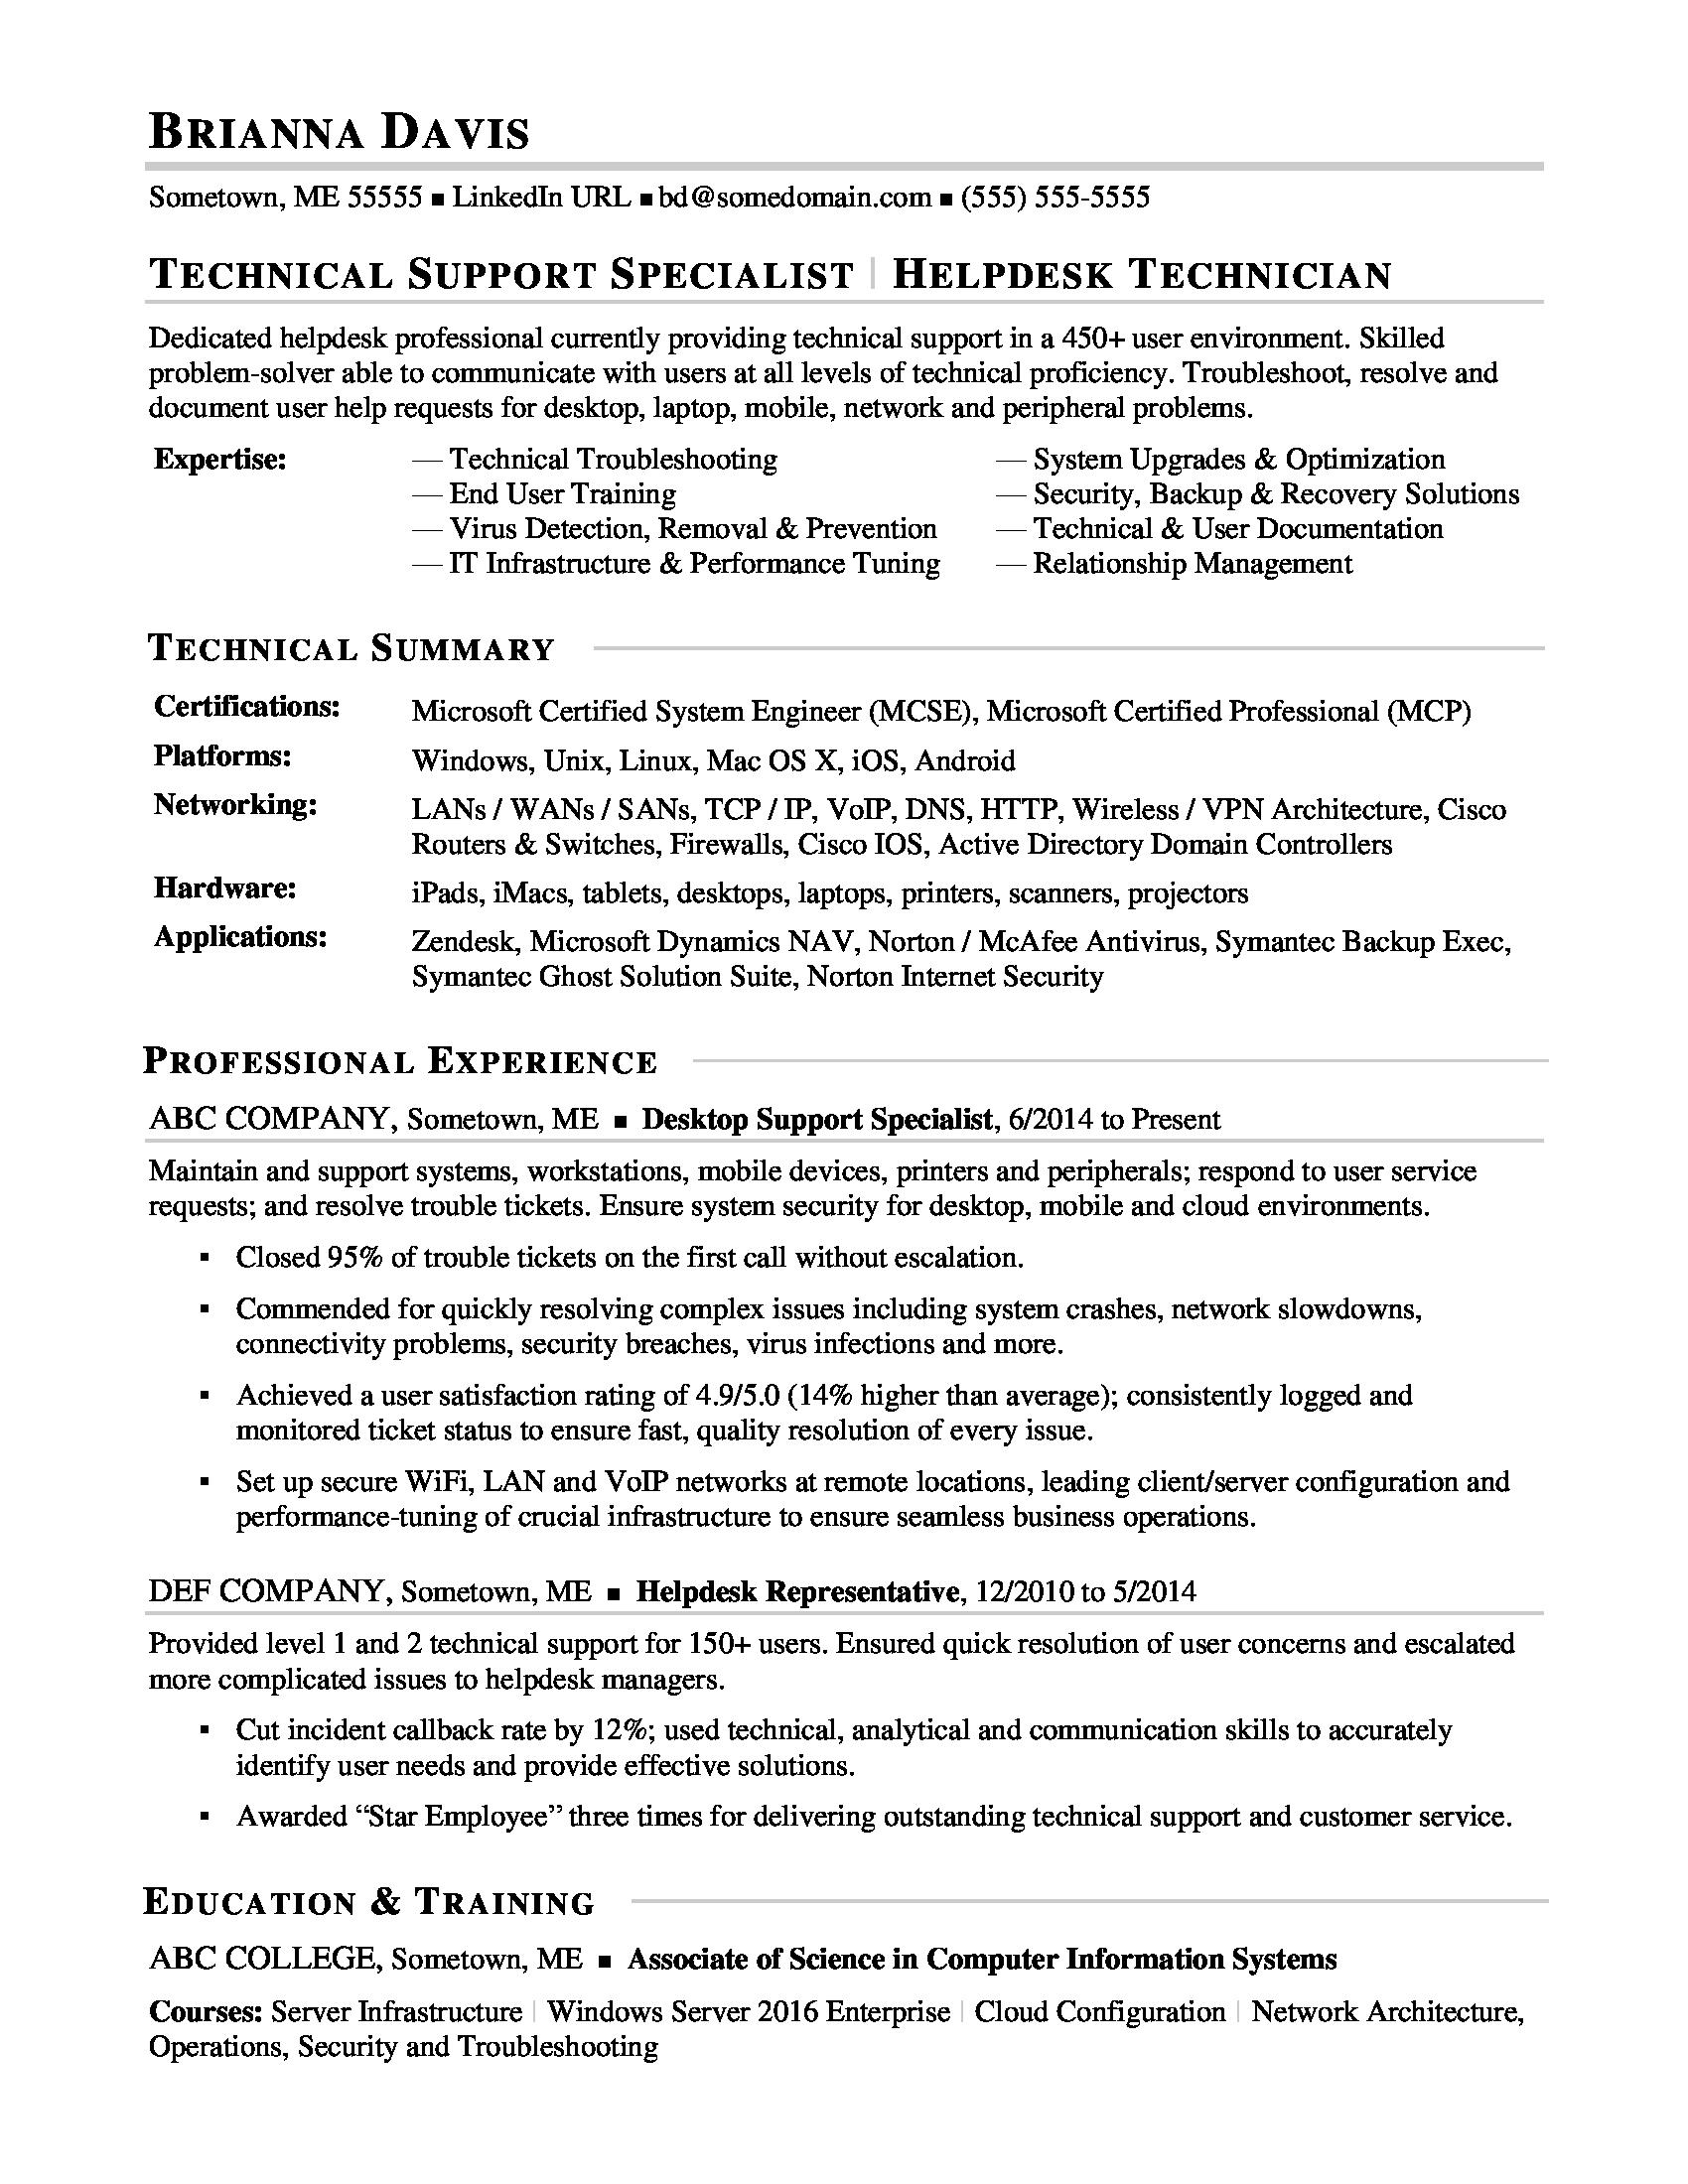 sample resume for experienced it help desk employee - Sample Employment Resume